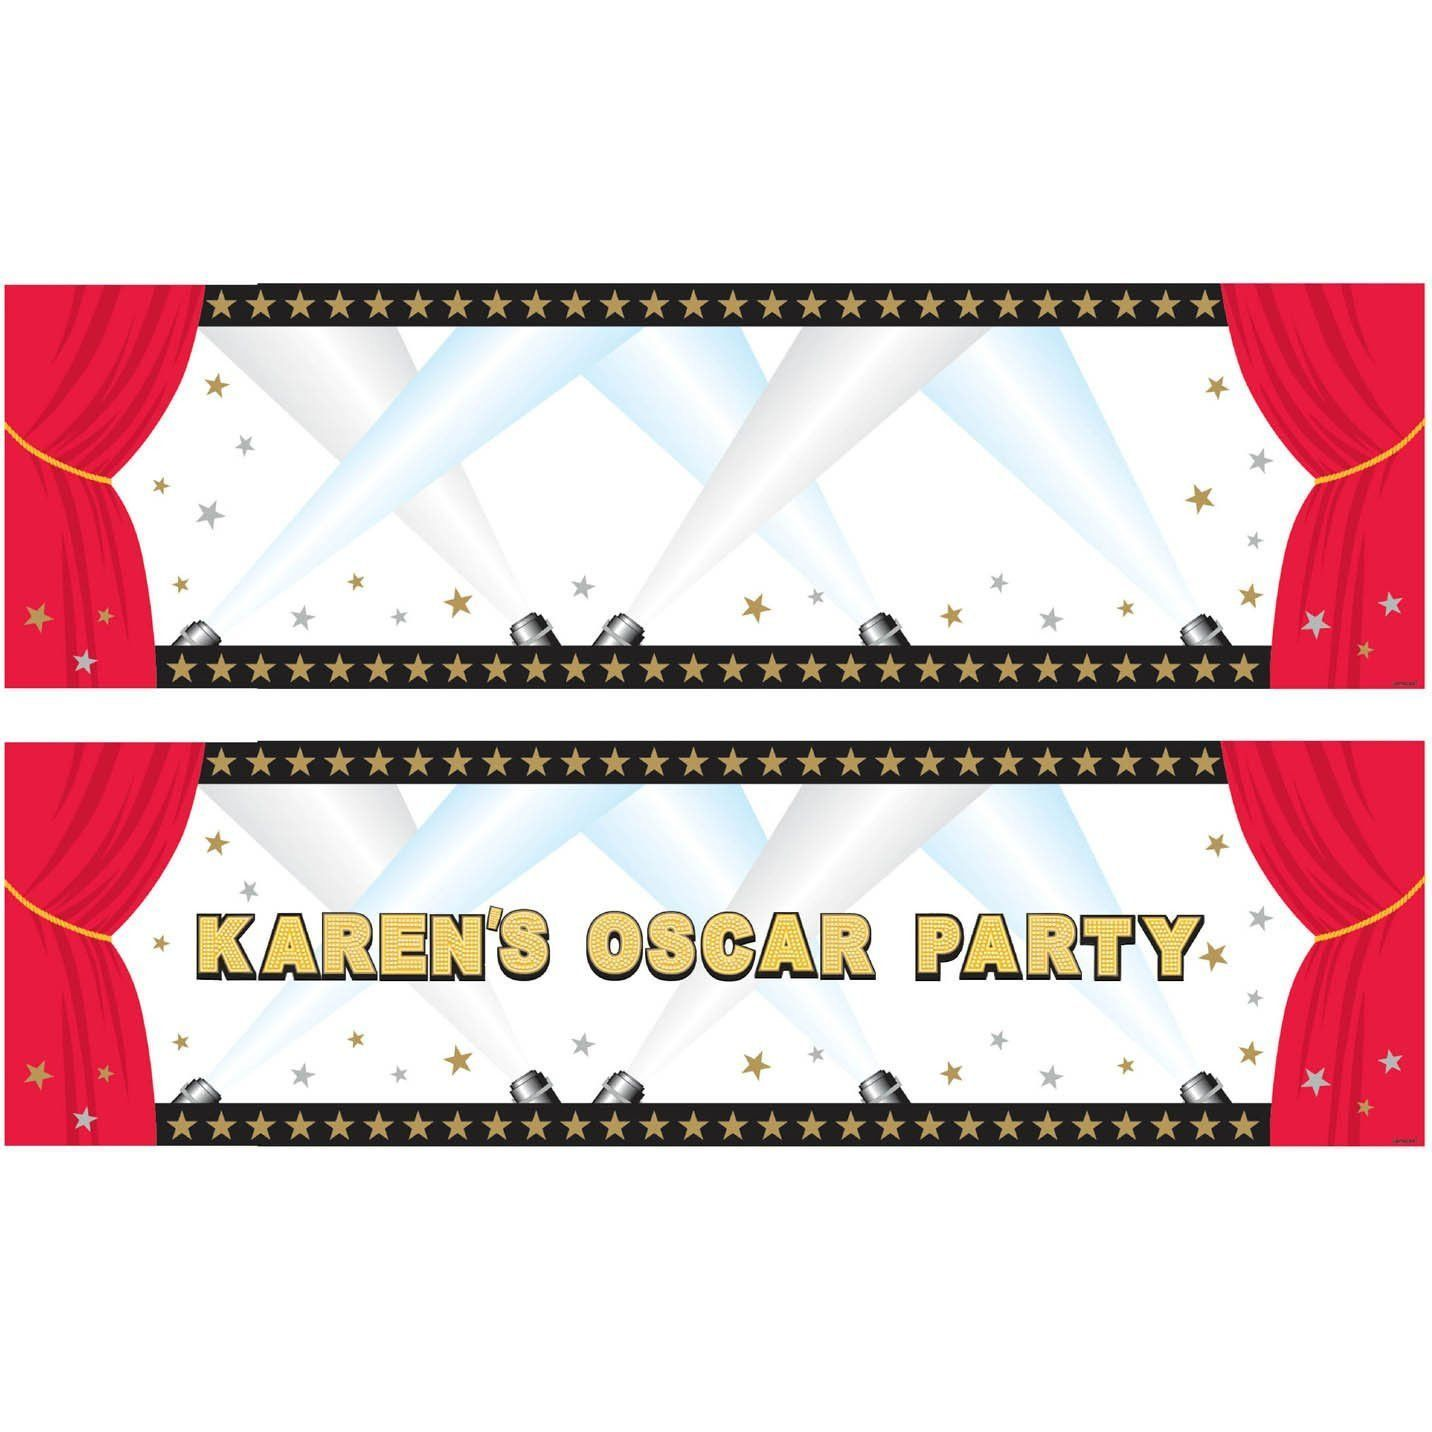 Partyartikel Roter Teppich Hollywood Personalized Giant Banner 5ft